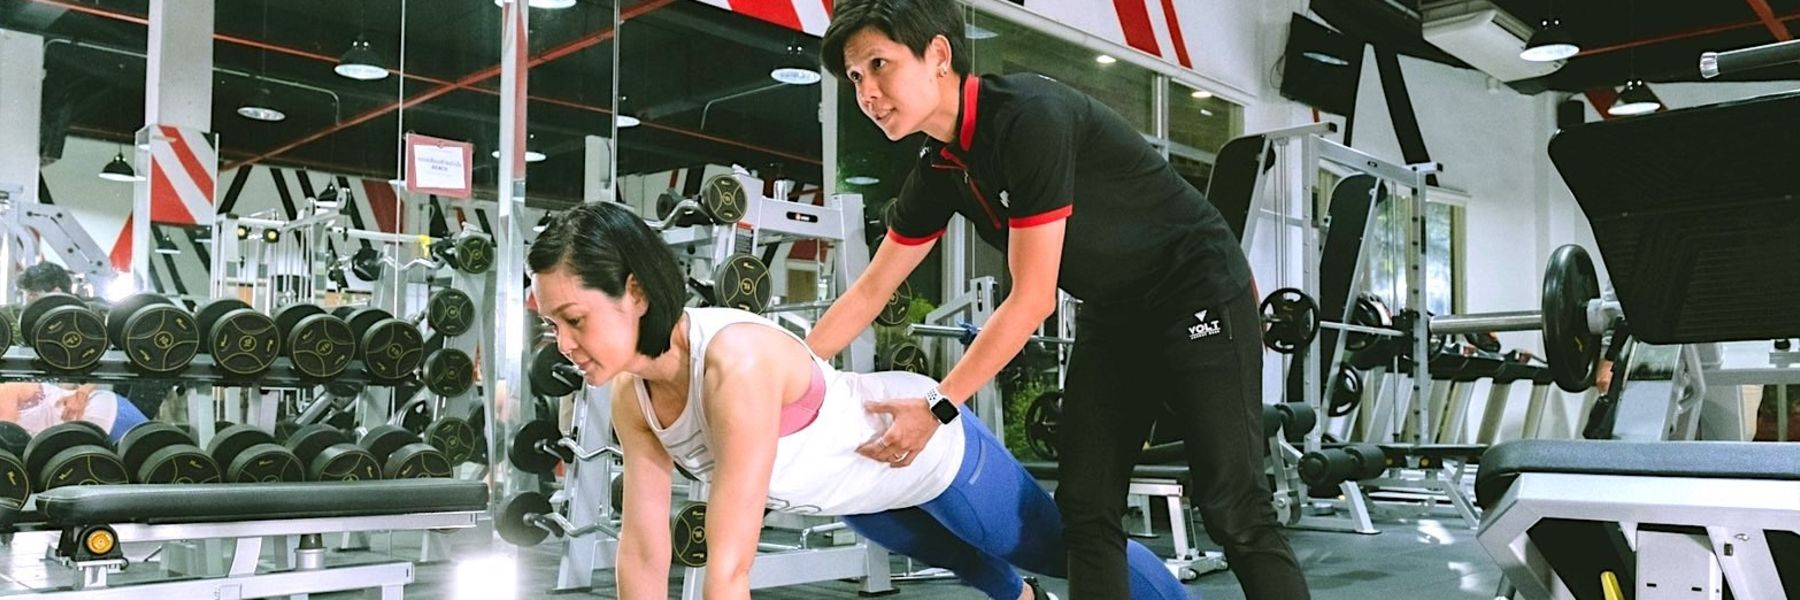 My Fitness - The Paseo Town image